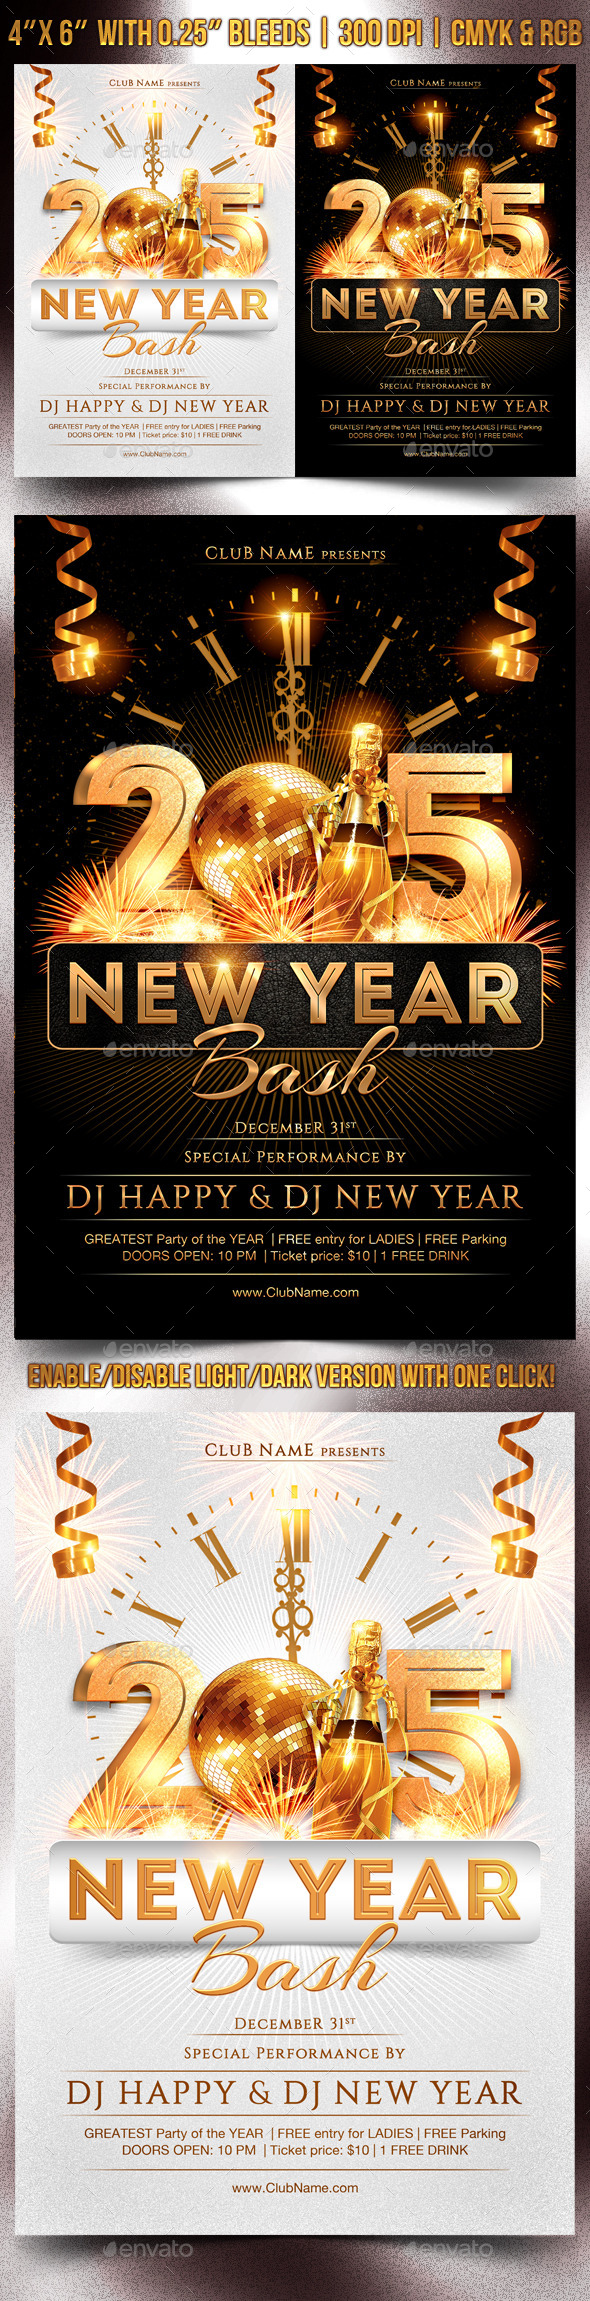 GraphicRiver New Year Bash Flyer Template 9582439